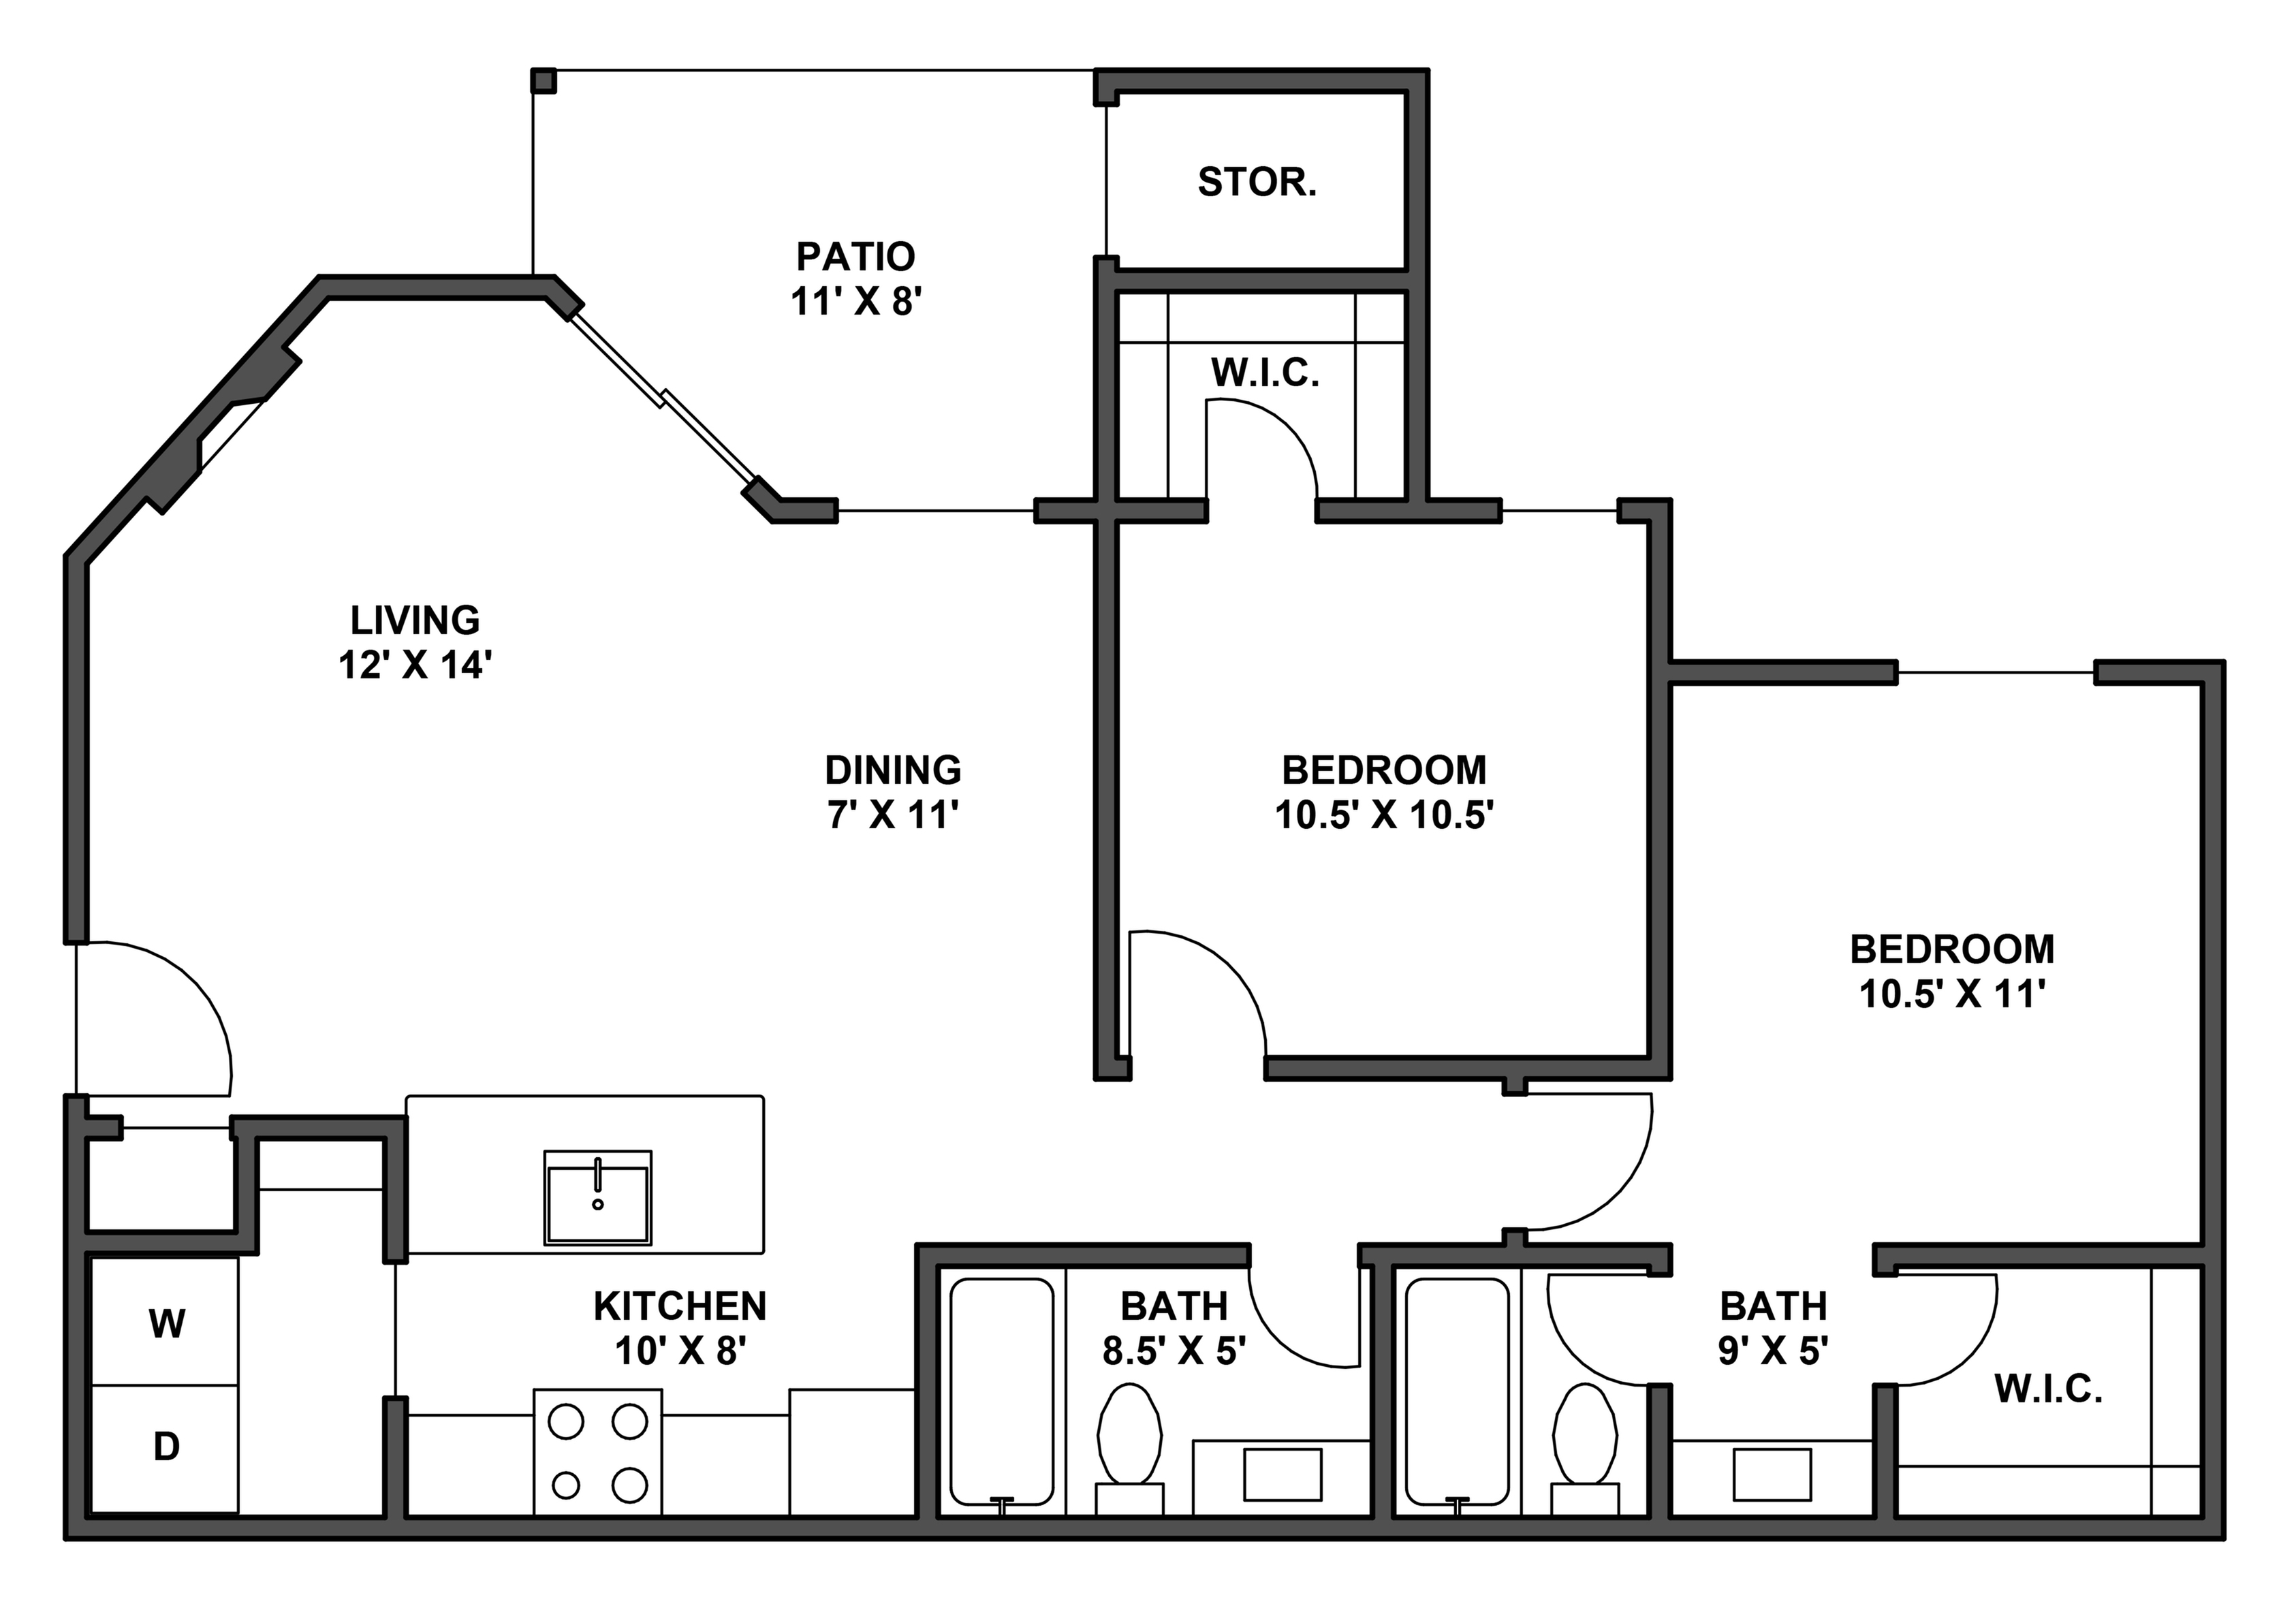 Two bedroom, two bathroom, patio with storage, living room, dining room, kitchen, laundry room, two walk in closets. B1 floor plan, 877 Square feet.